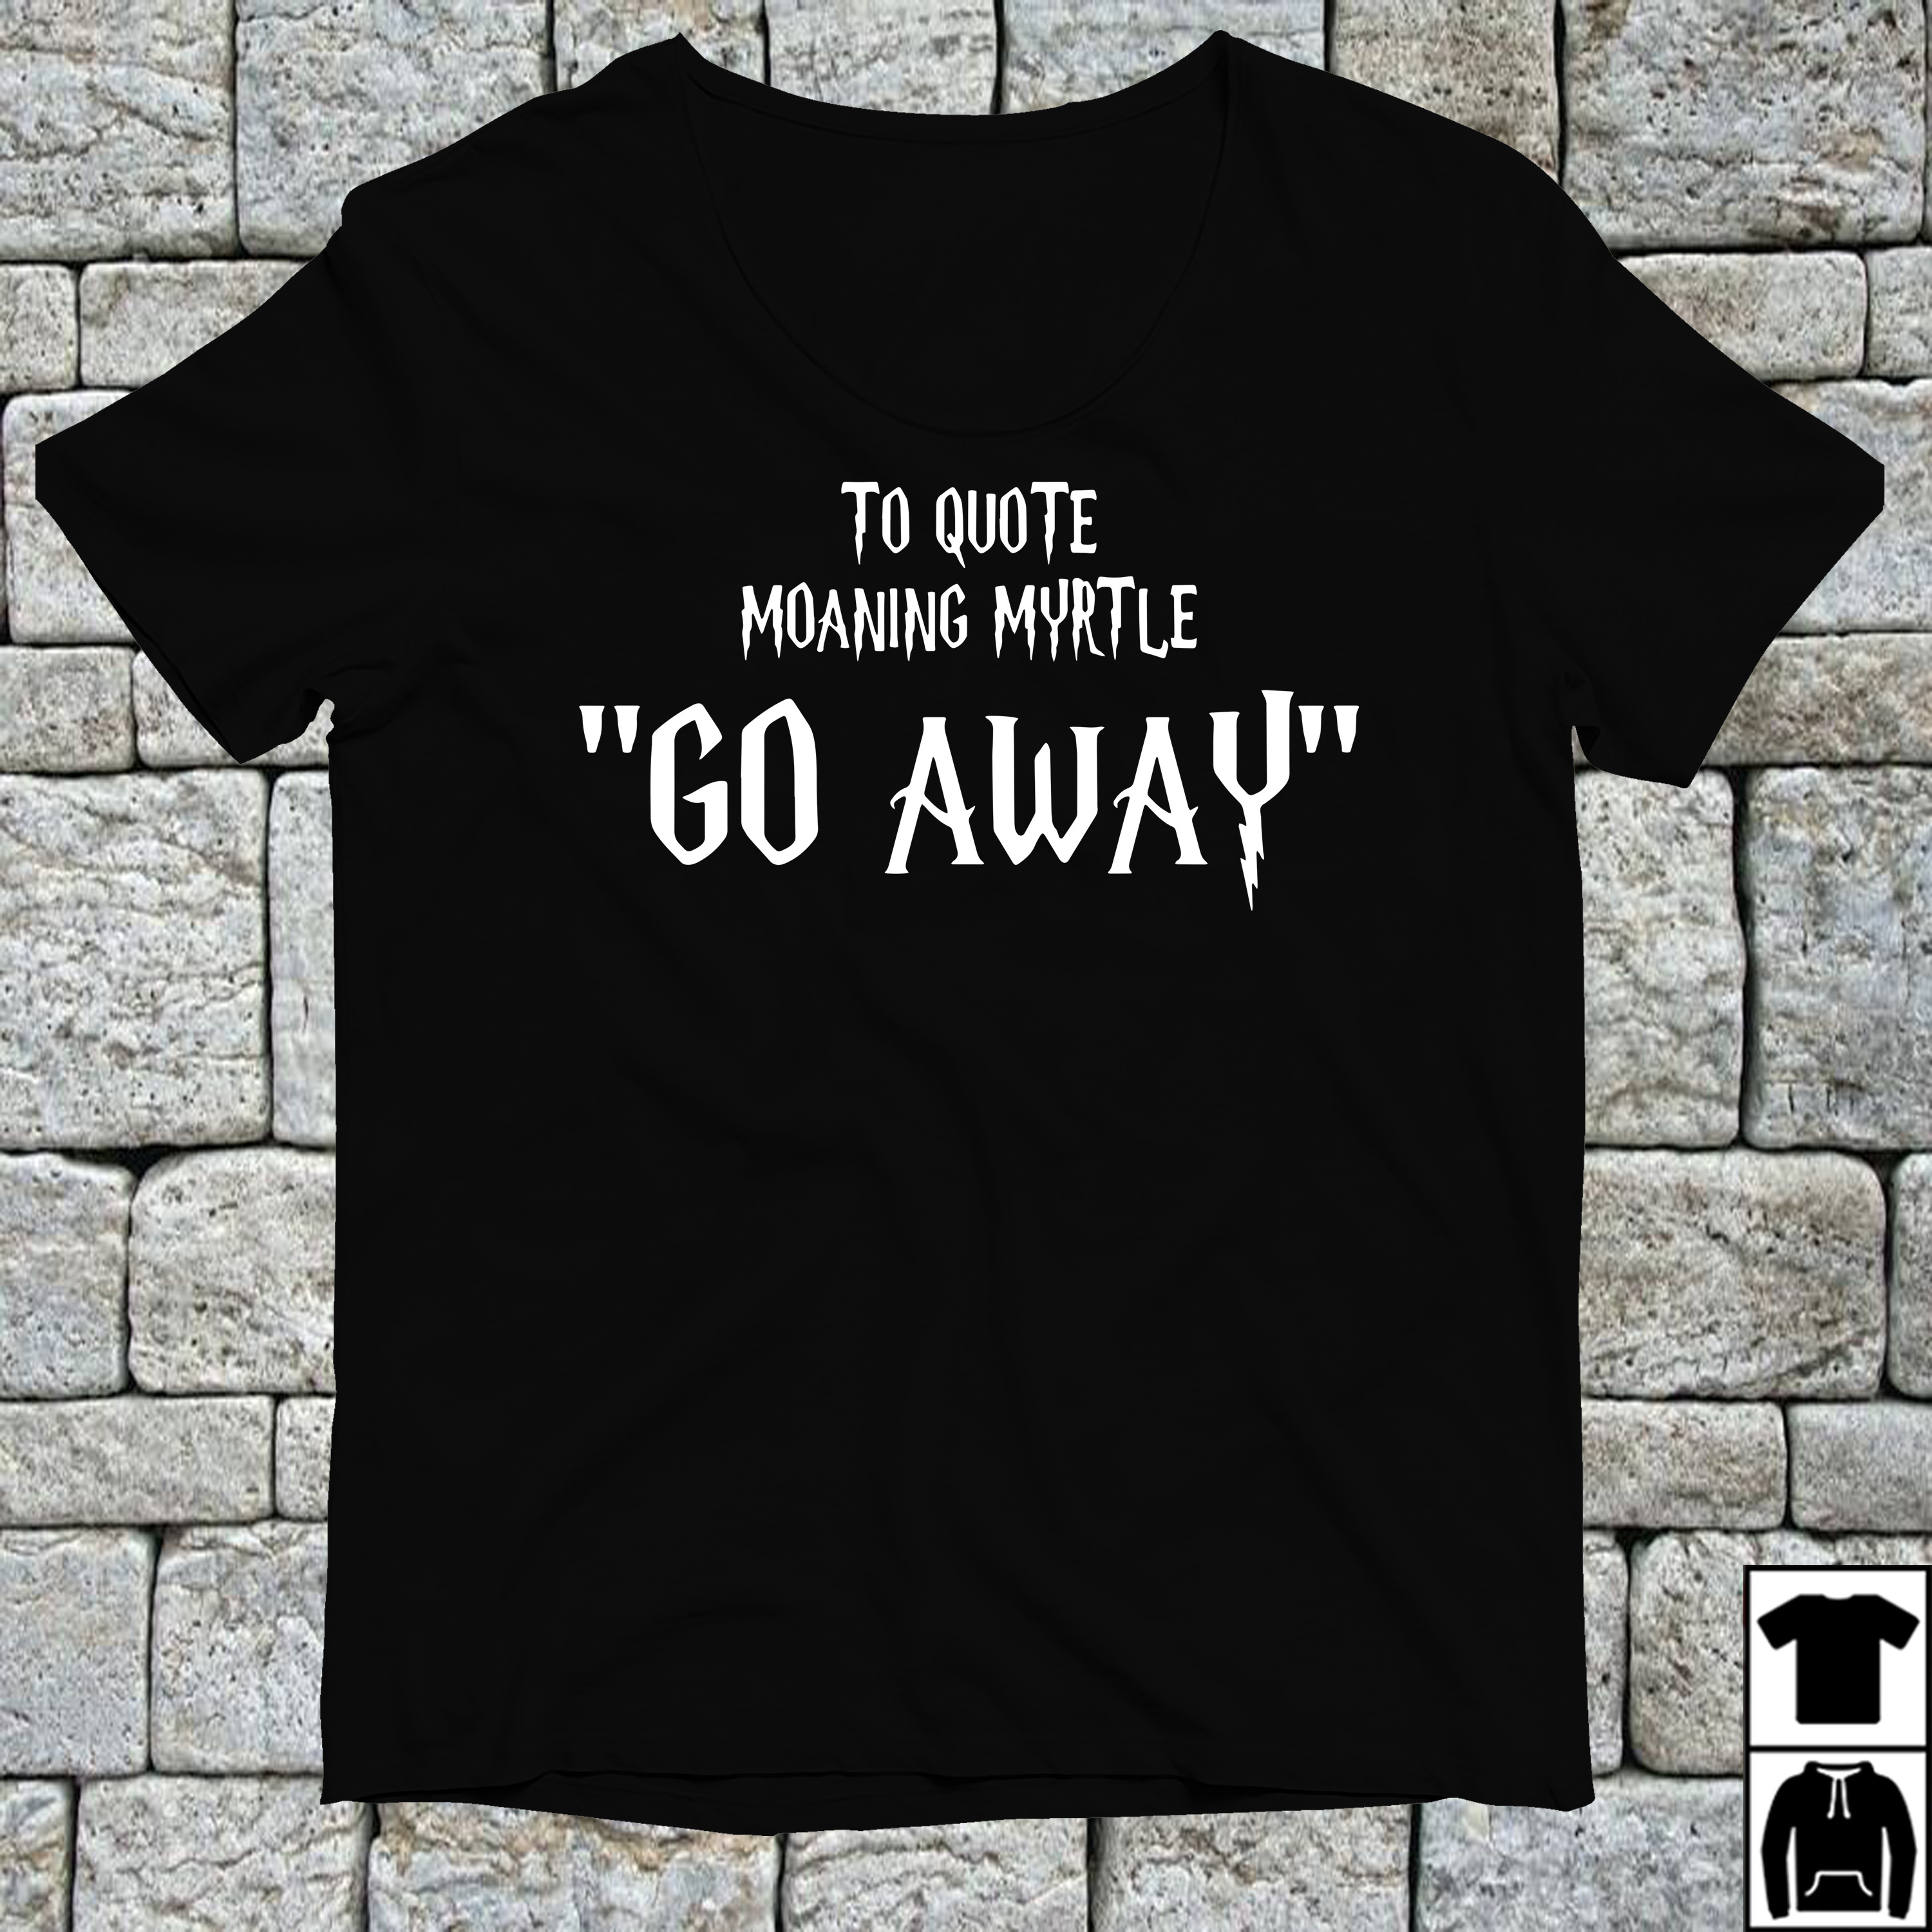 To quote moaning myrtle go away shirt